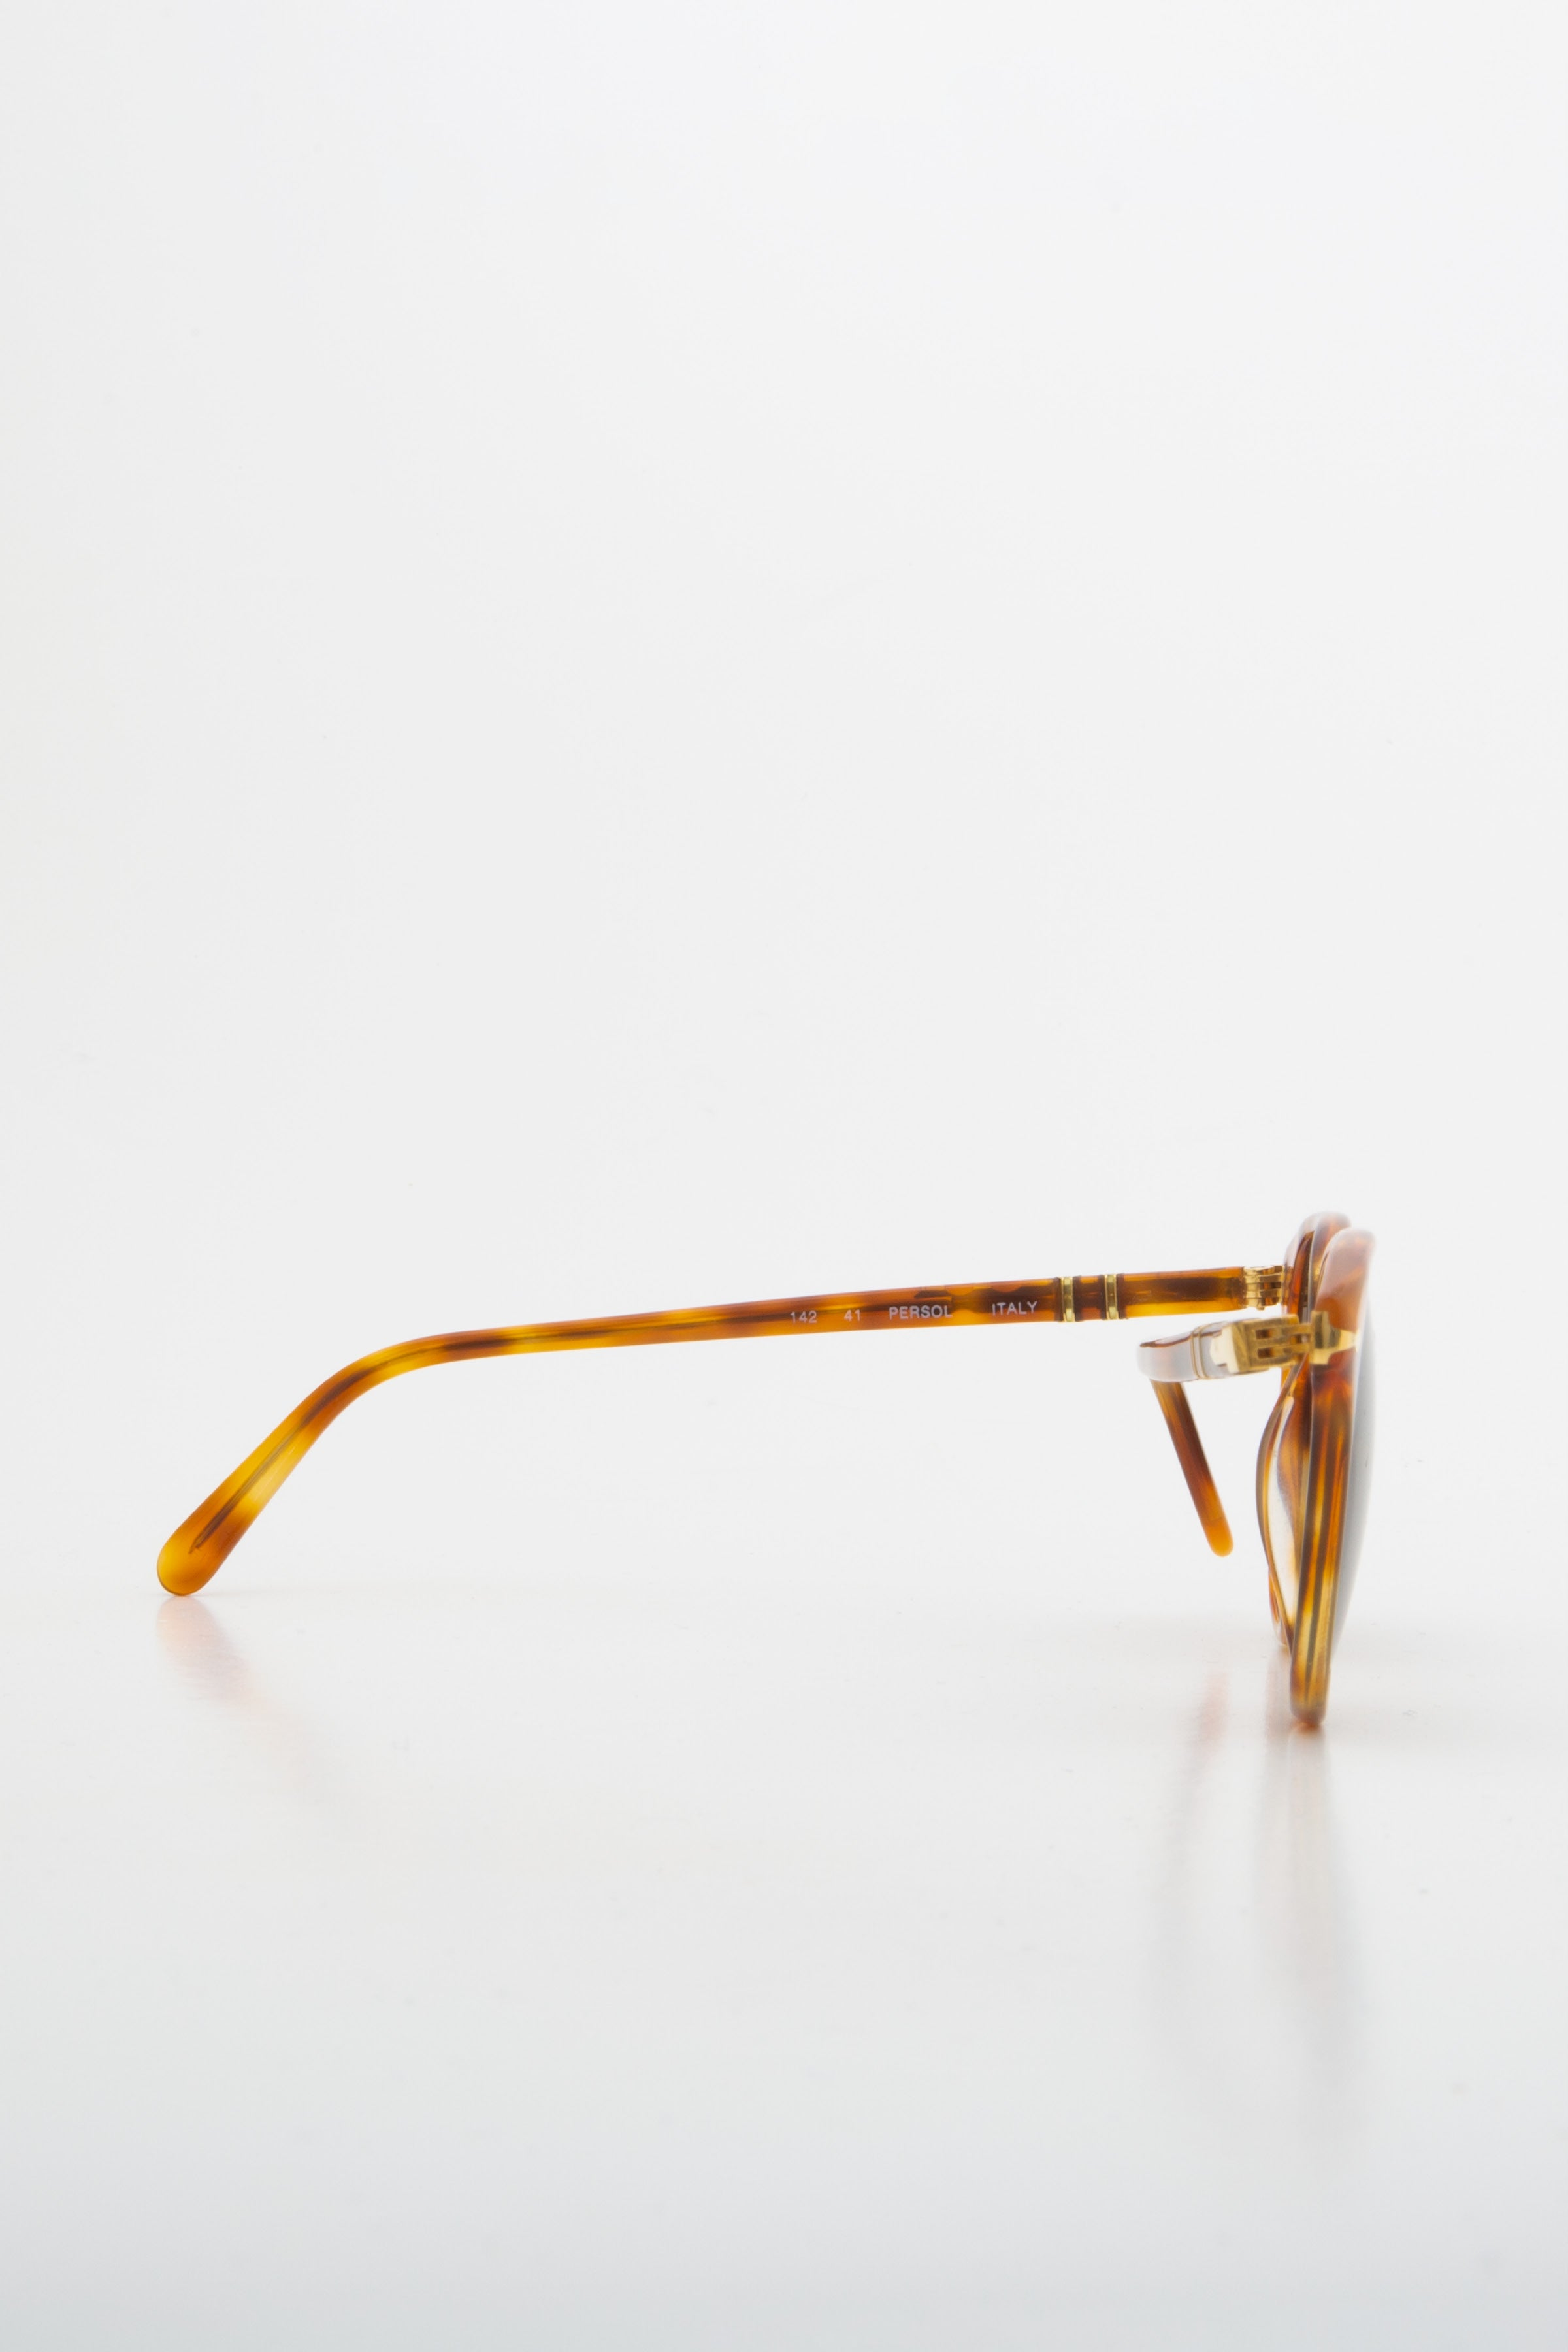 Persol 315 (Light Havana)